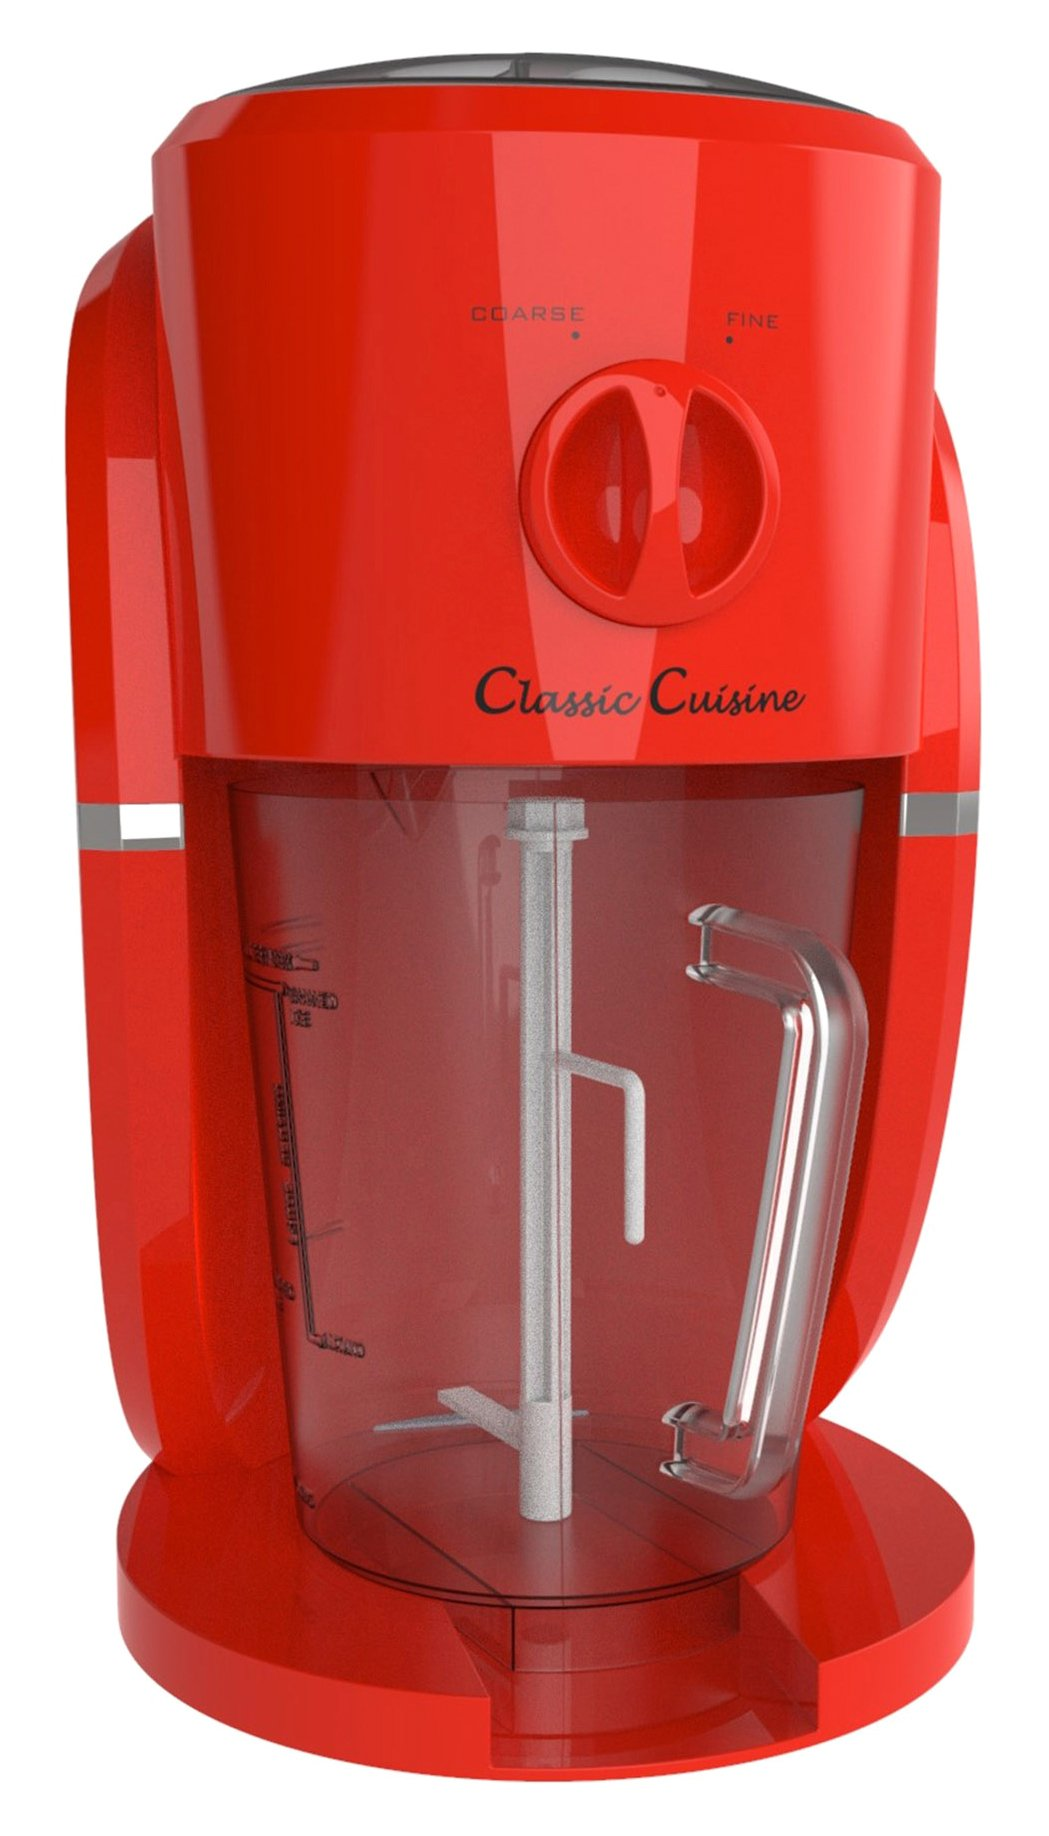 Frozen Drink Maker, Mixer and Ice Crusher Machine for Margaritas, Pina Coladas, Daiquiris, Shaved Ice Treats or Slushy Desserts by Classic Cuisine by Classic Cuisine (Image #7)